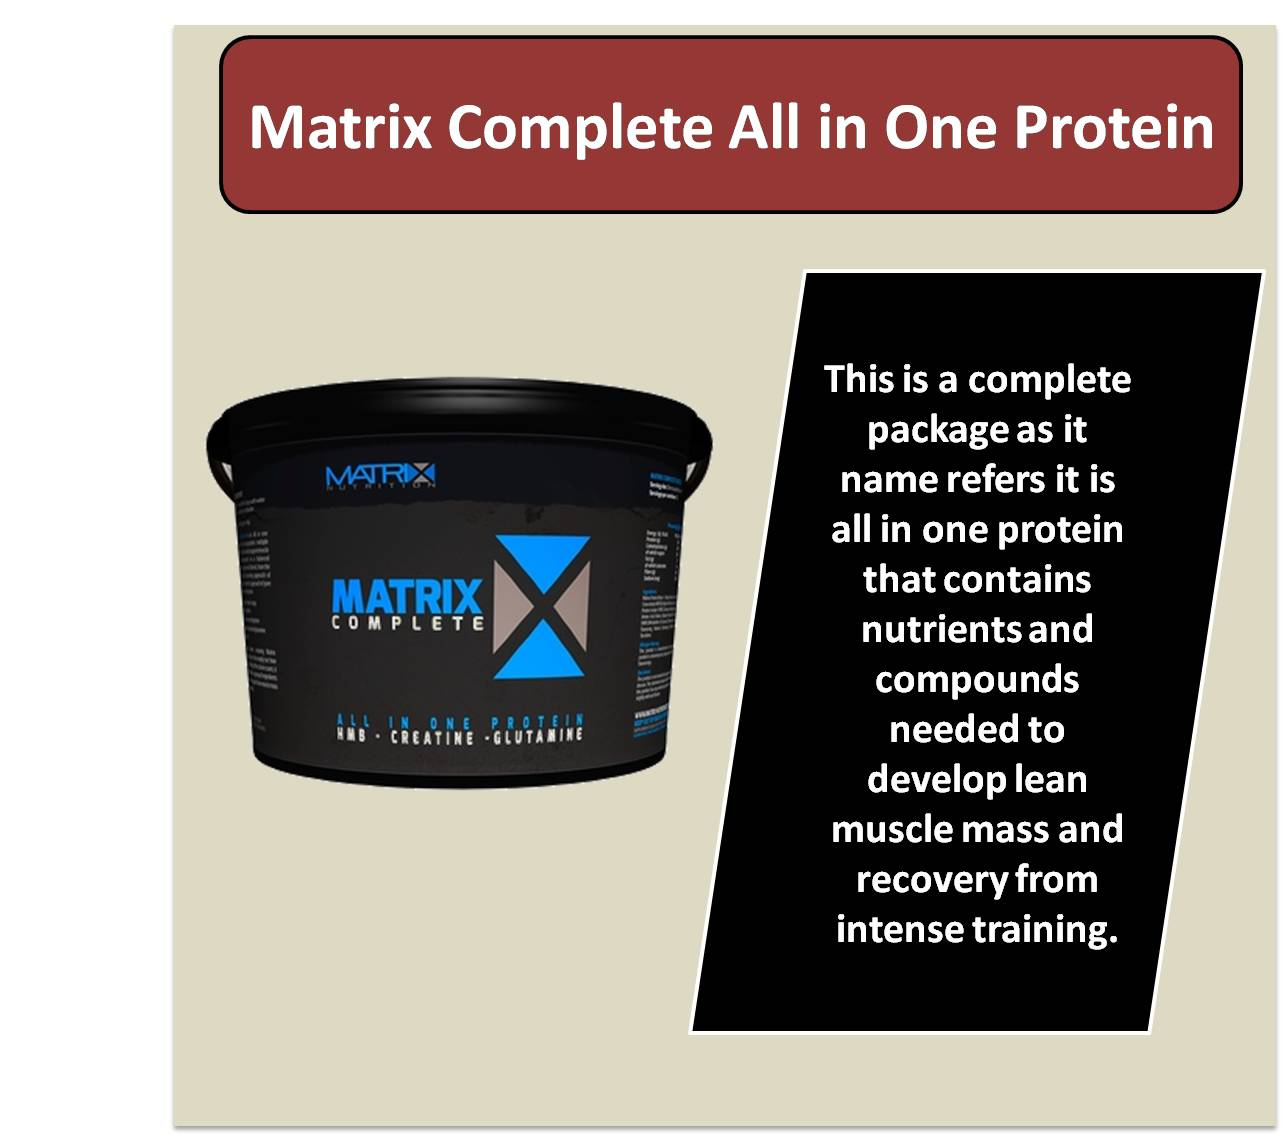 Matrix Complete All in One Protein